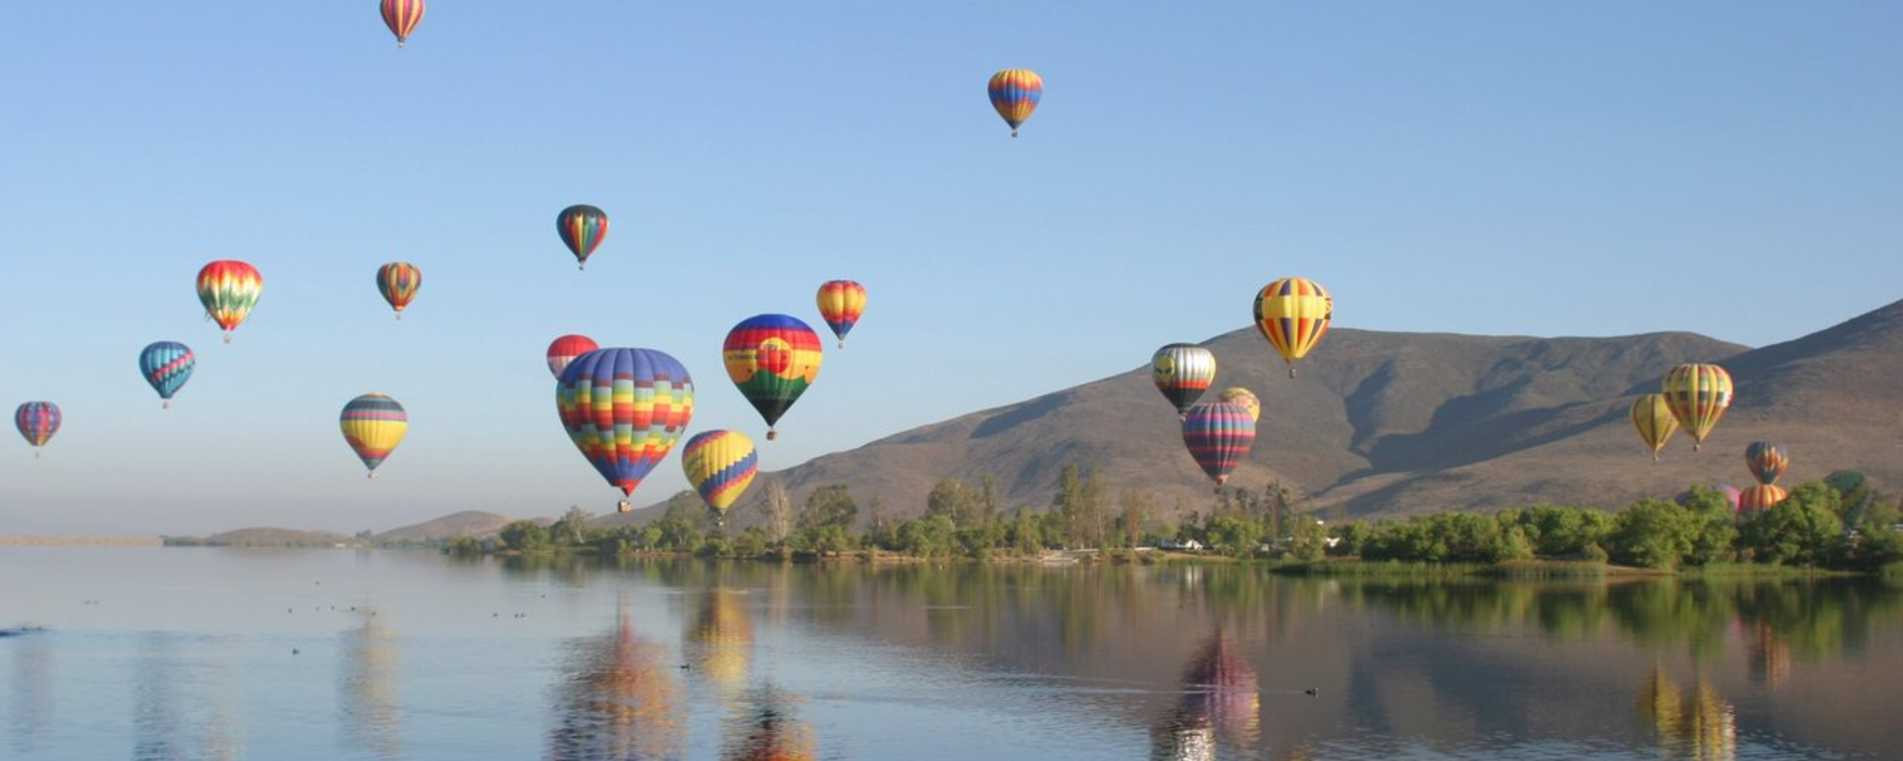 A Grape Escape Balloon Adventure - Temecula